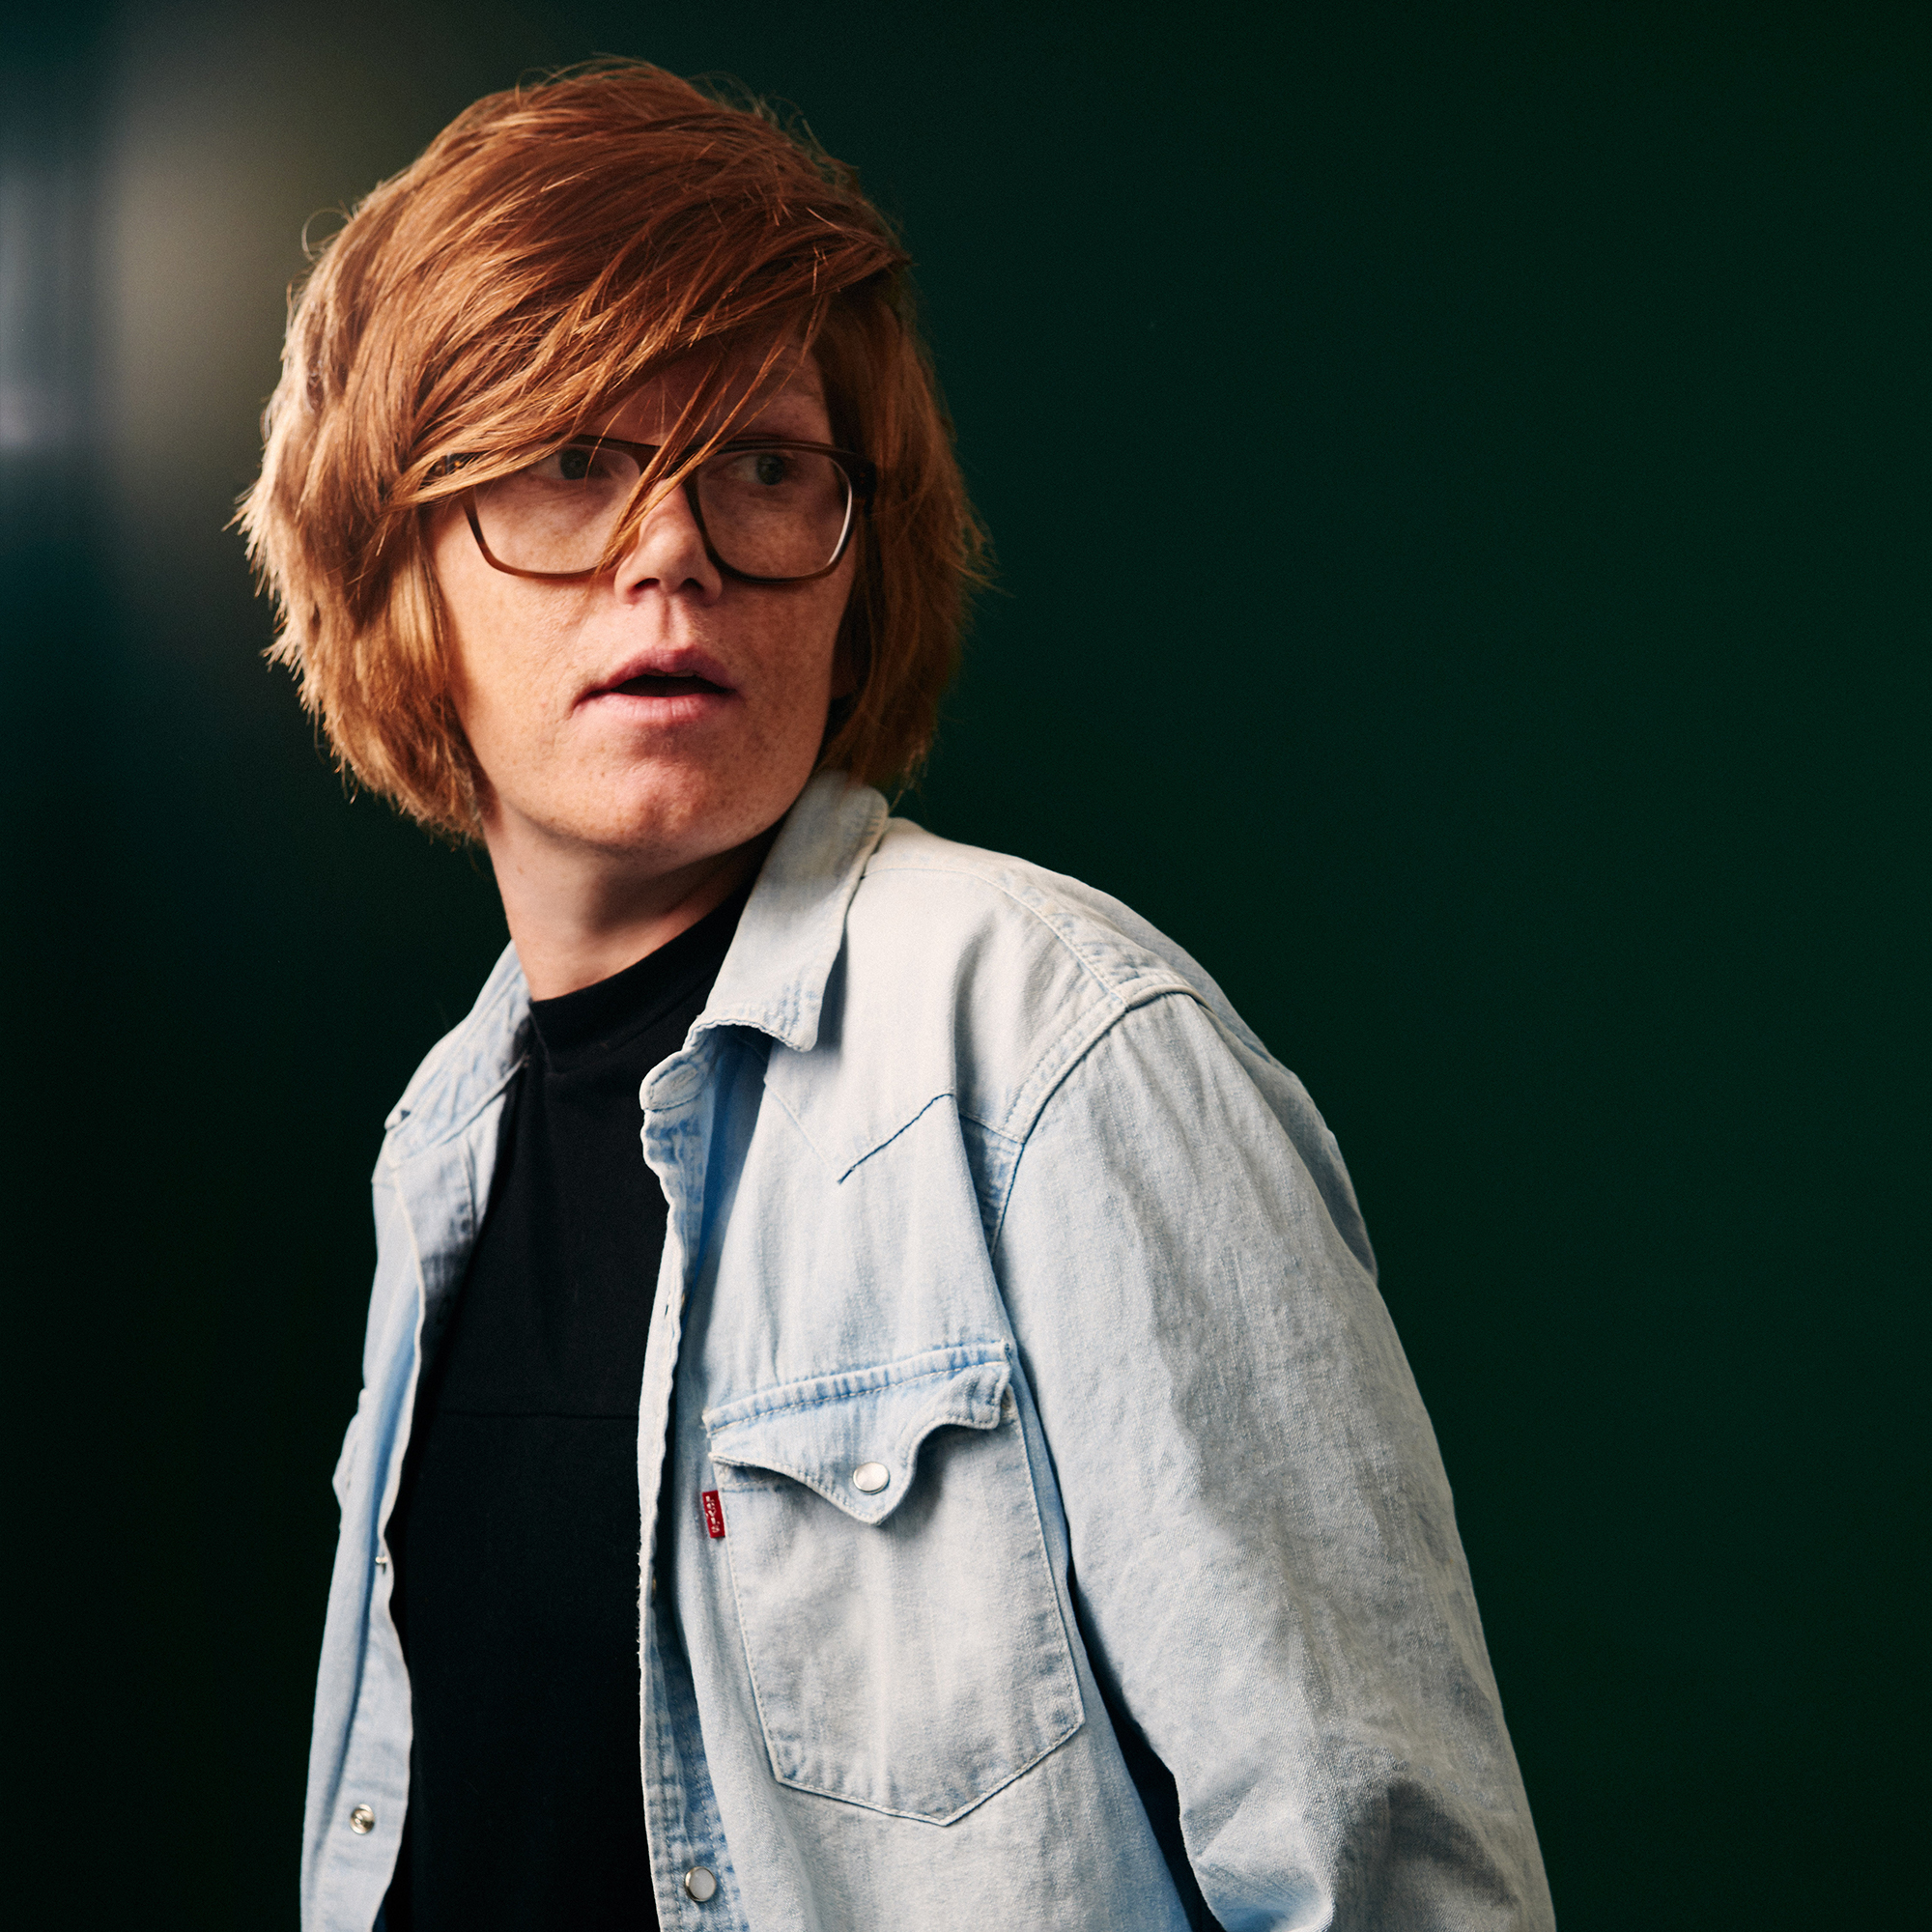 Brett Dennen - Sunday, June 23rd, 7:00 PM